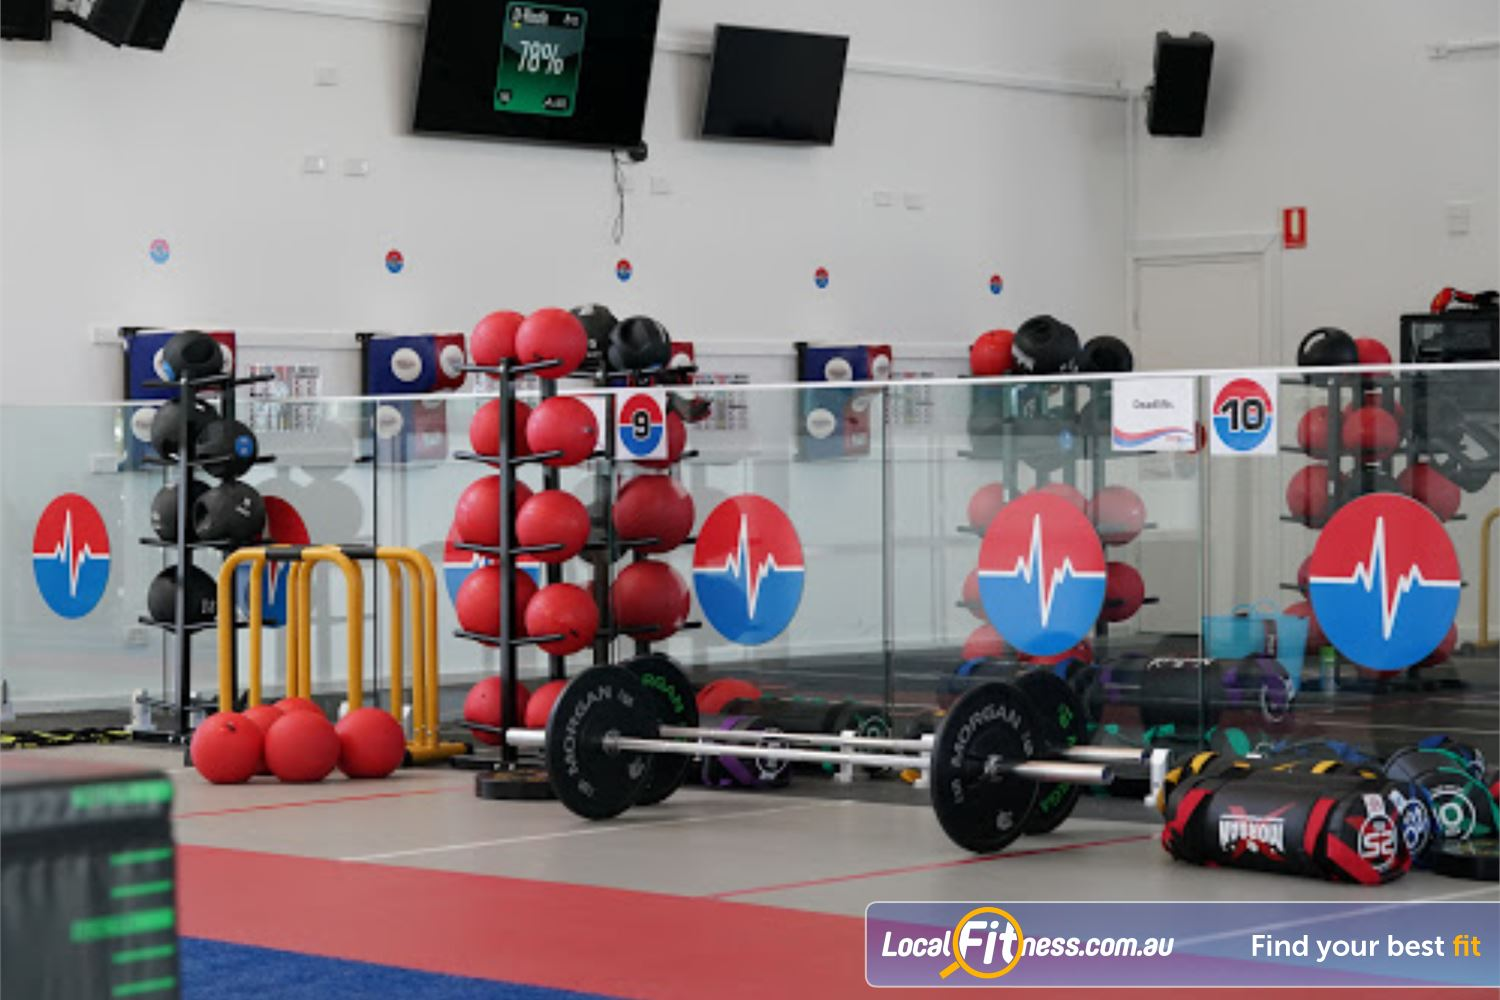 North Ryde Fitness & Aquatic Near Denistone High intensity, Low impact Interval Training in our North Ryde HIIT gym.